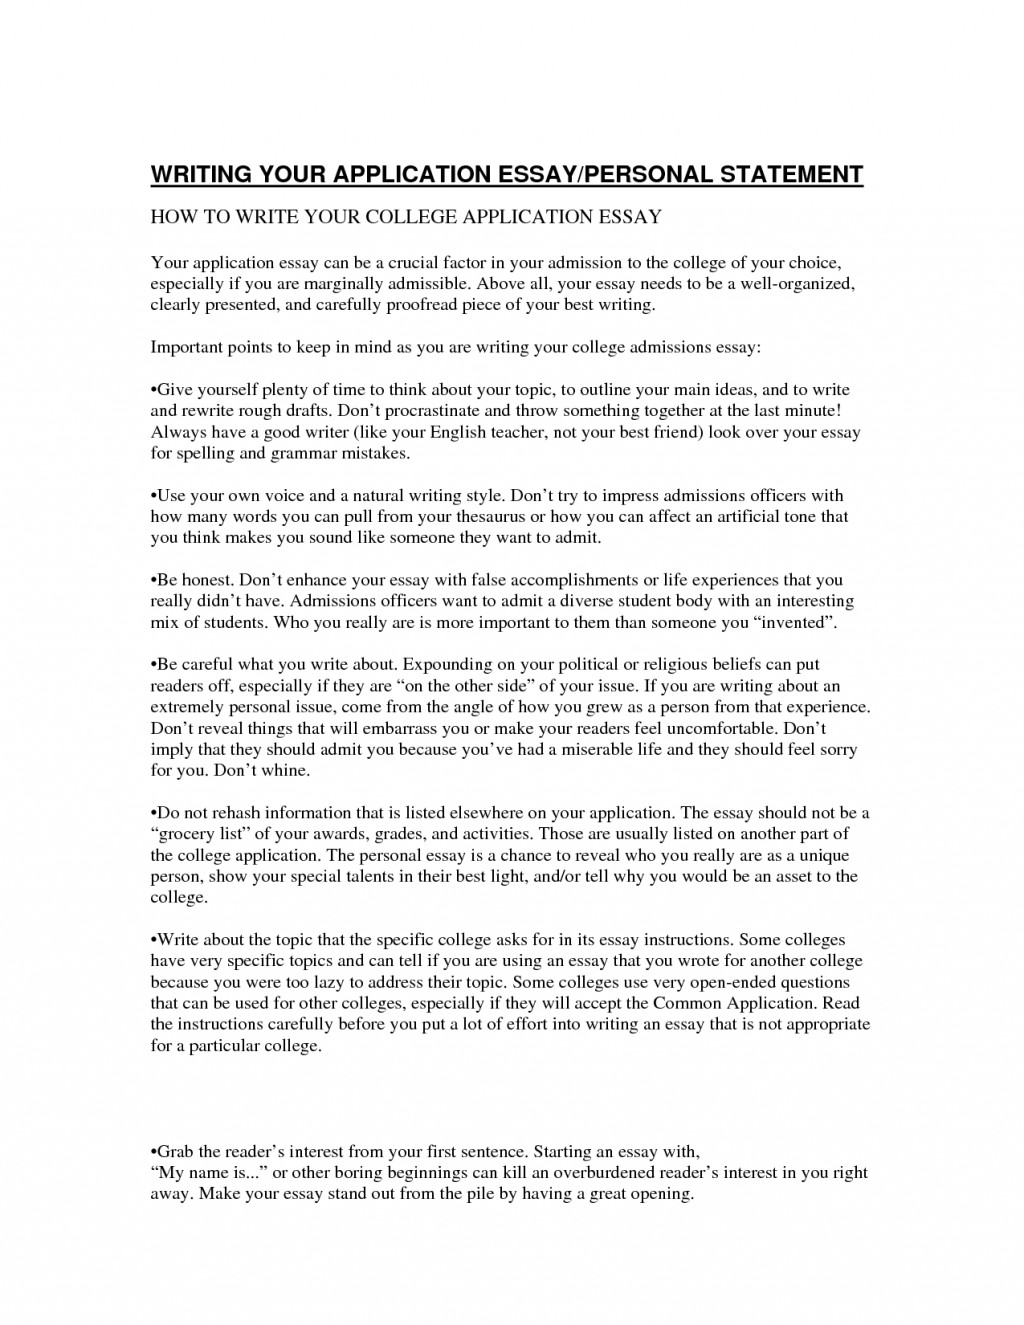 006 Scholarships That Don T Require Essays Essay Remarkable Are There Any Don't 2019 Canadian Large